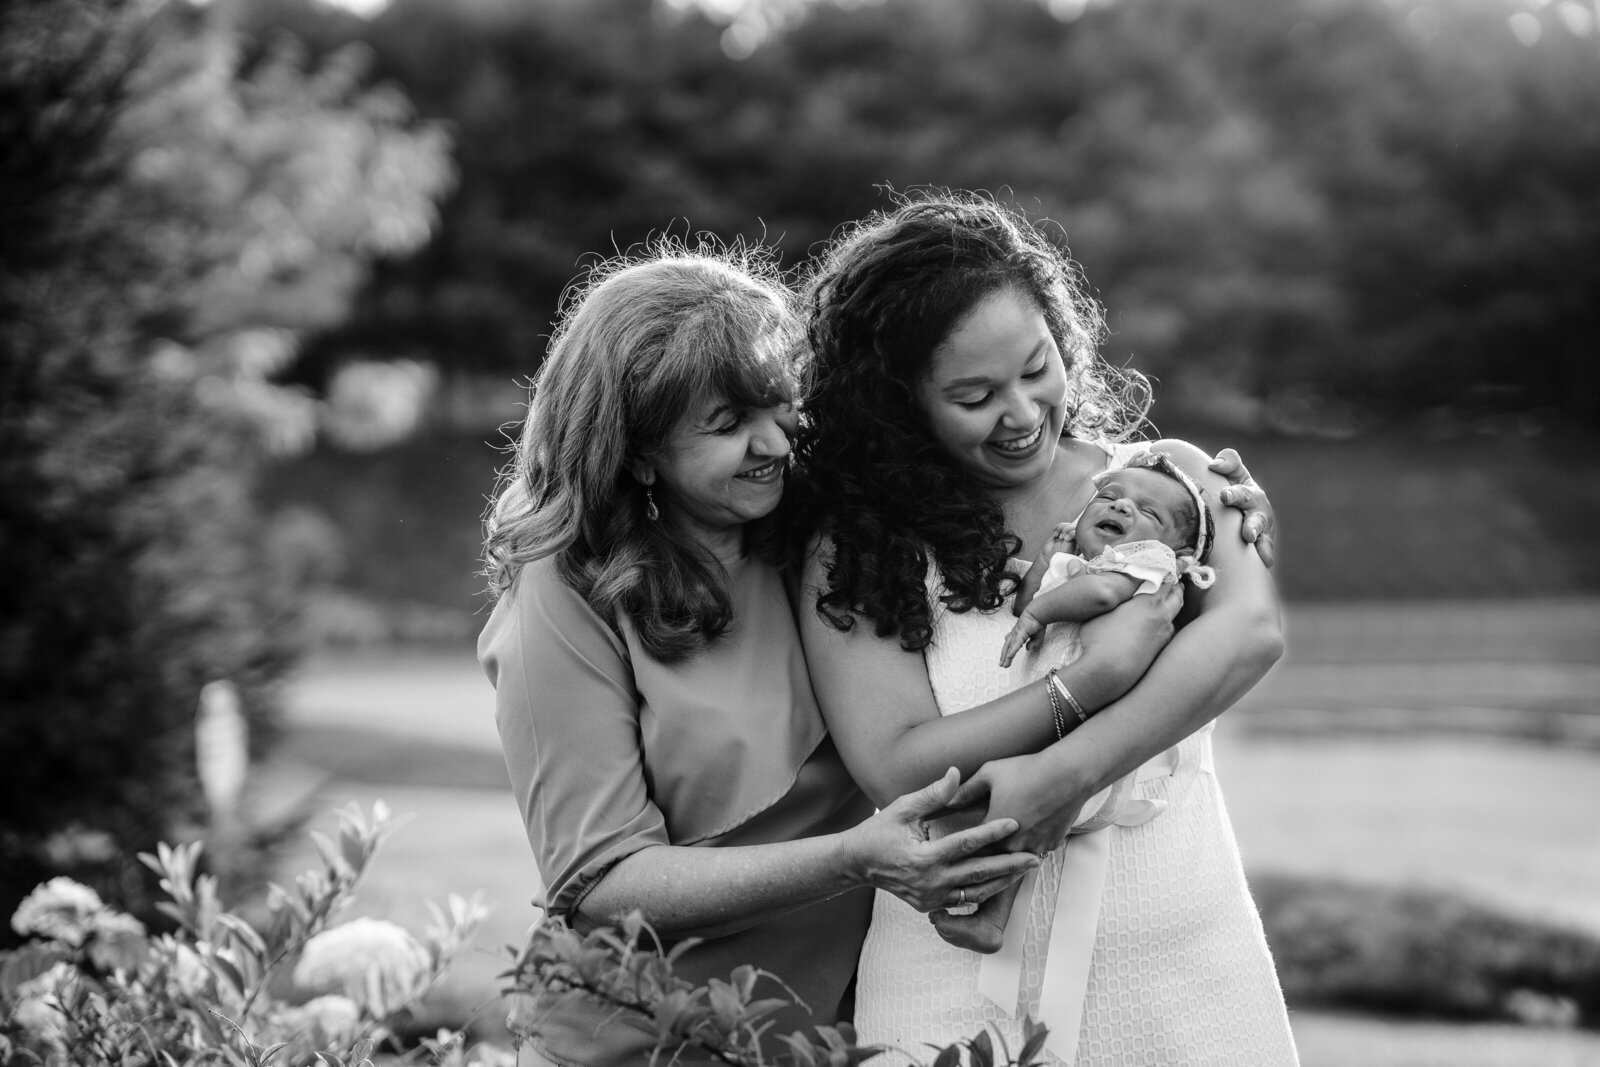 grandmother and mother hold newborn baby girl in generational portrait